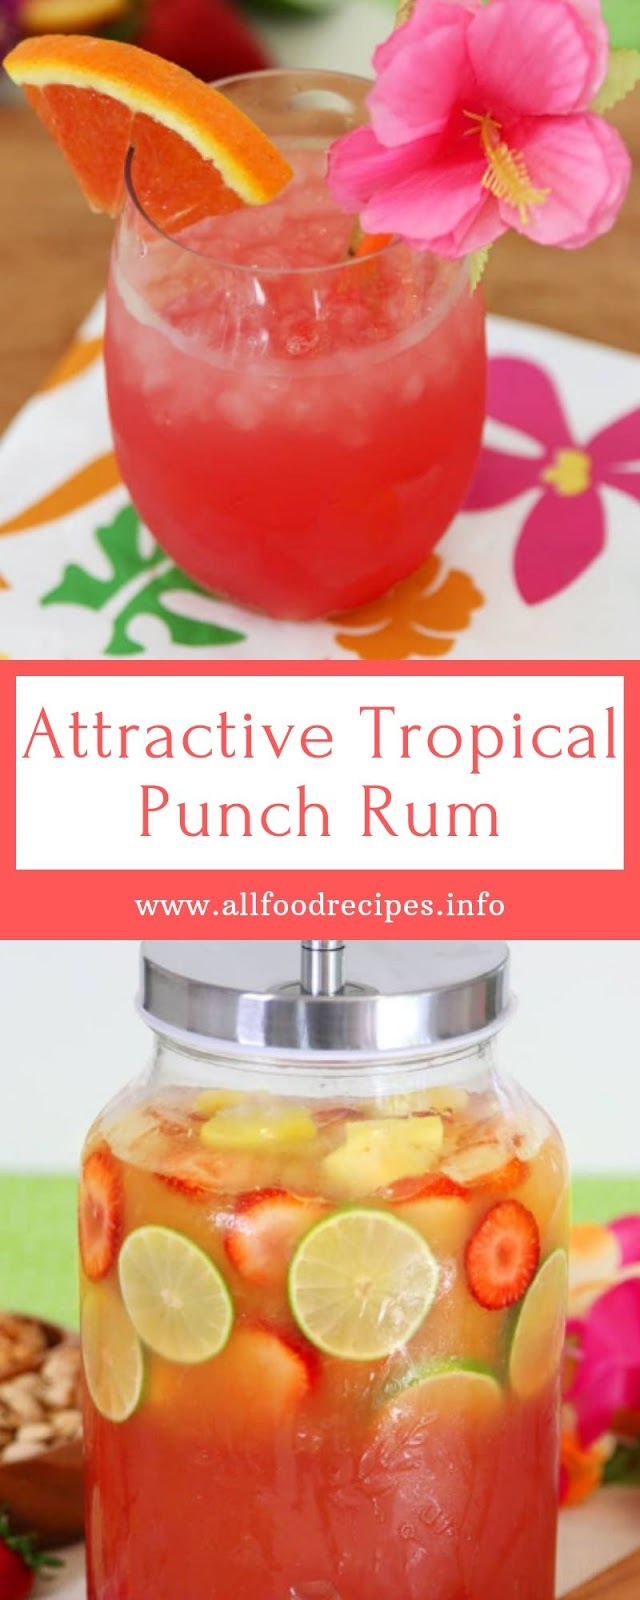 Attractive Tropical Punch Rum